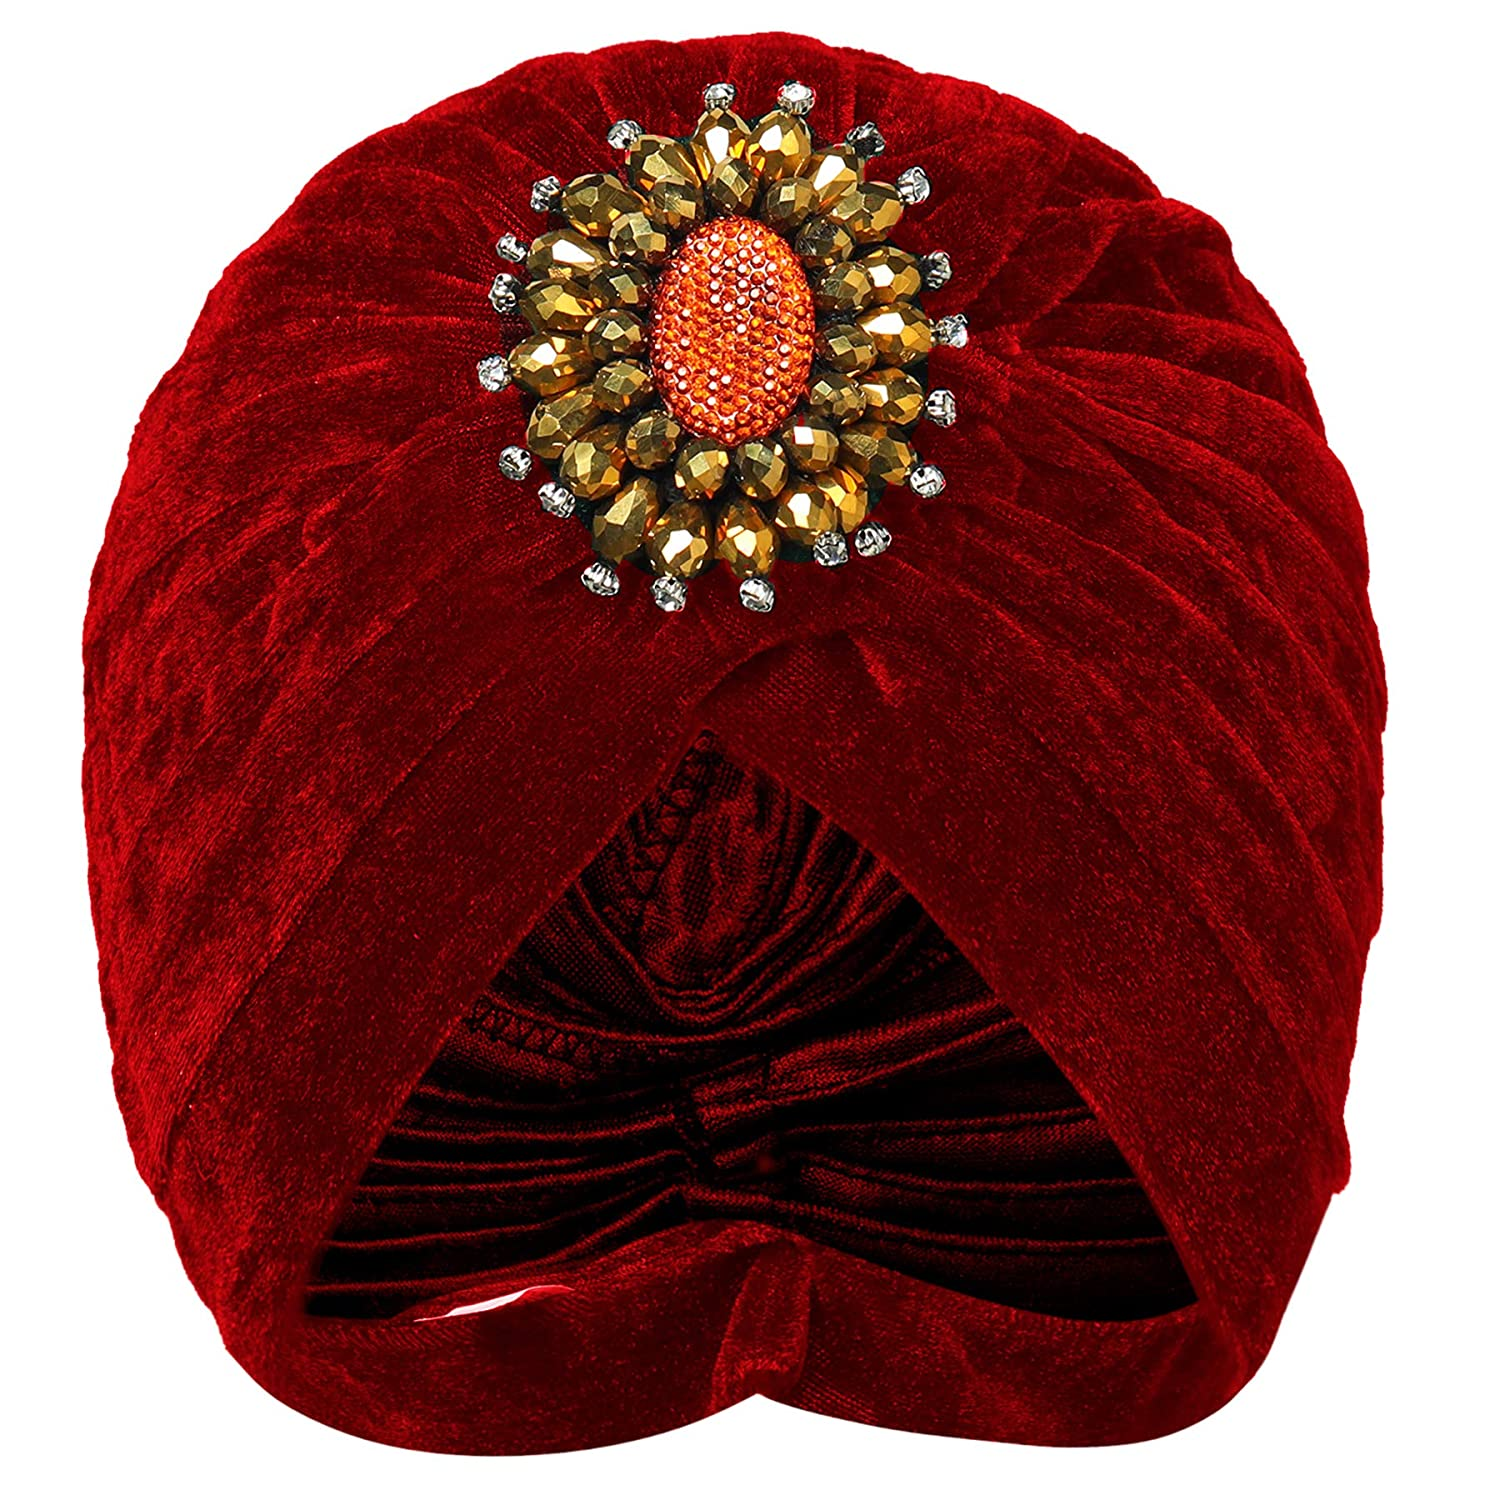 1920s Style Hats BABEYOND Womens Ruffle Turban Hat Knit Turban Headwraps with Detachable Crystal Brooch for 1920s Gatsby Party $10.99 AT vintagedancer.com